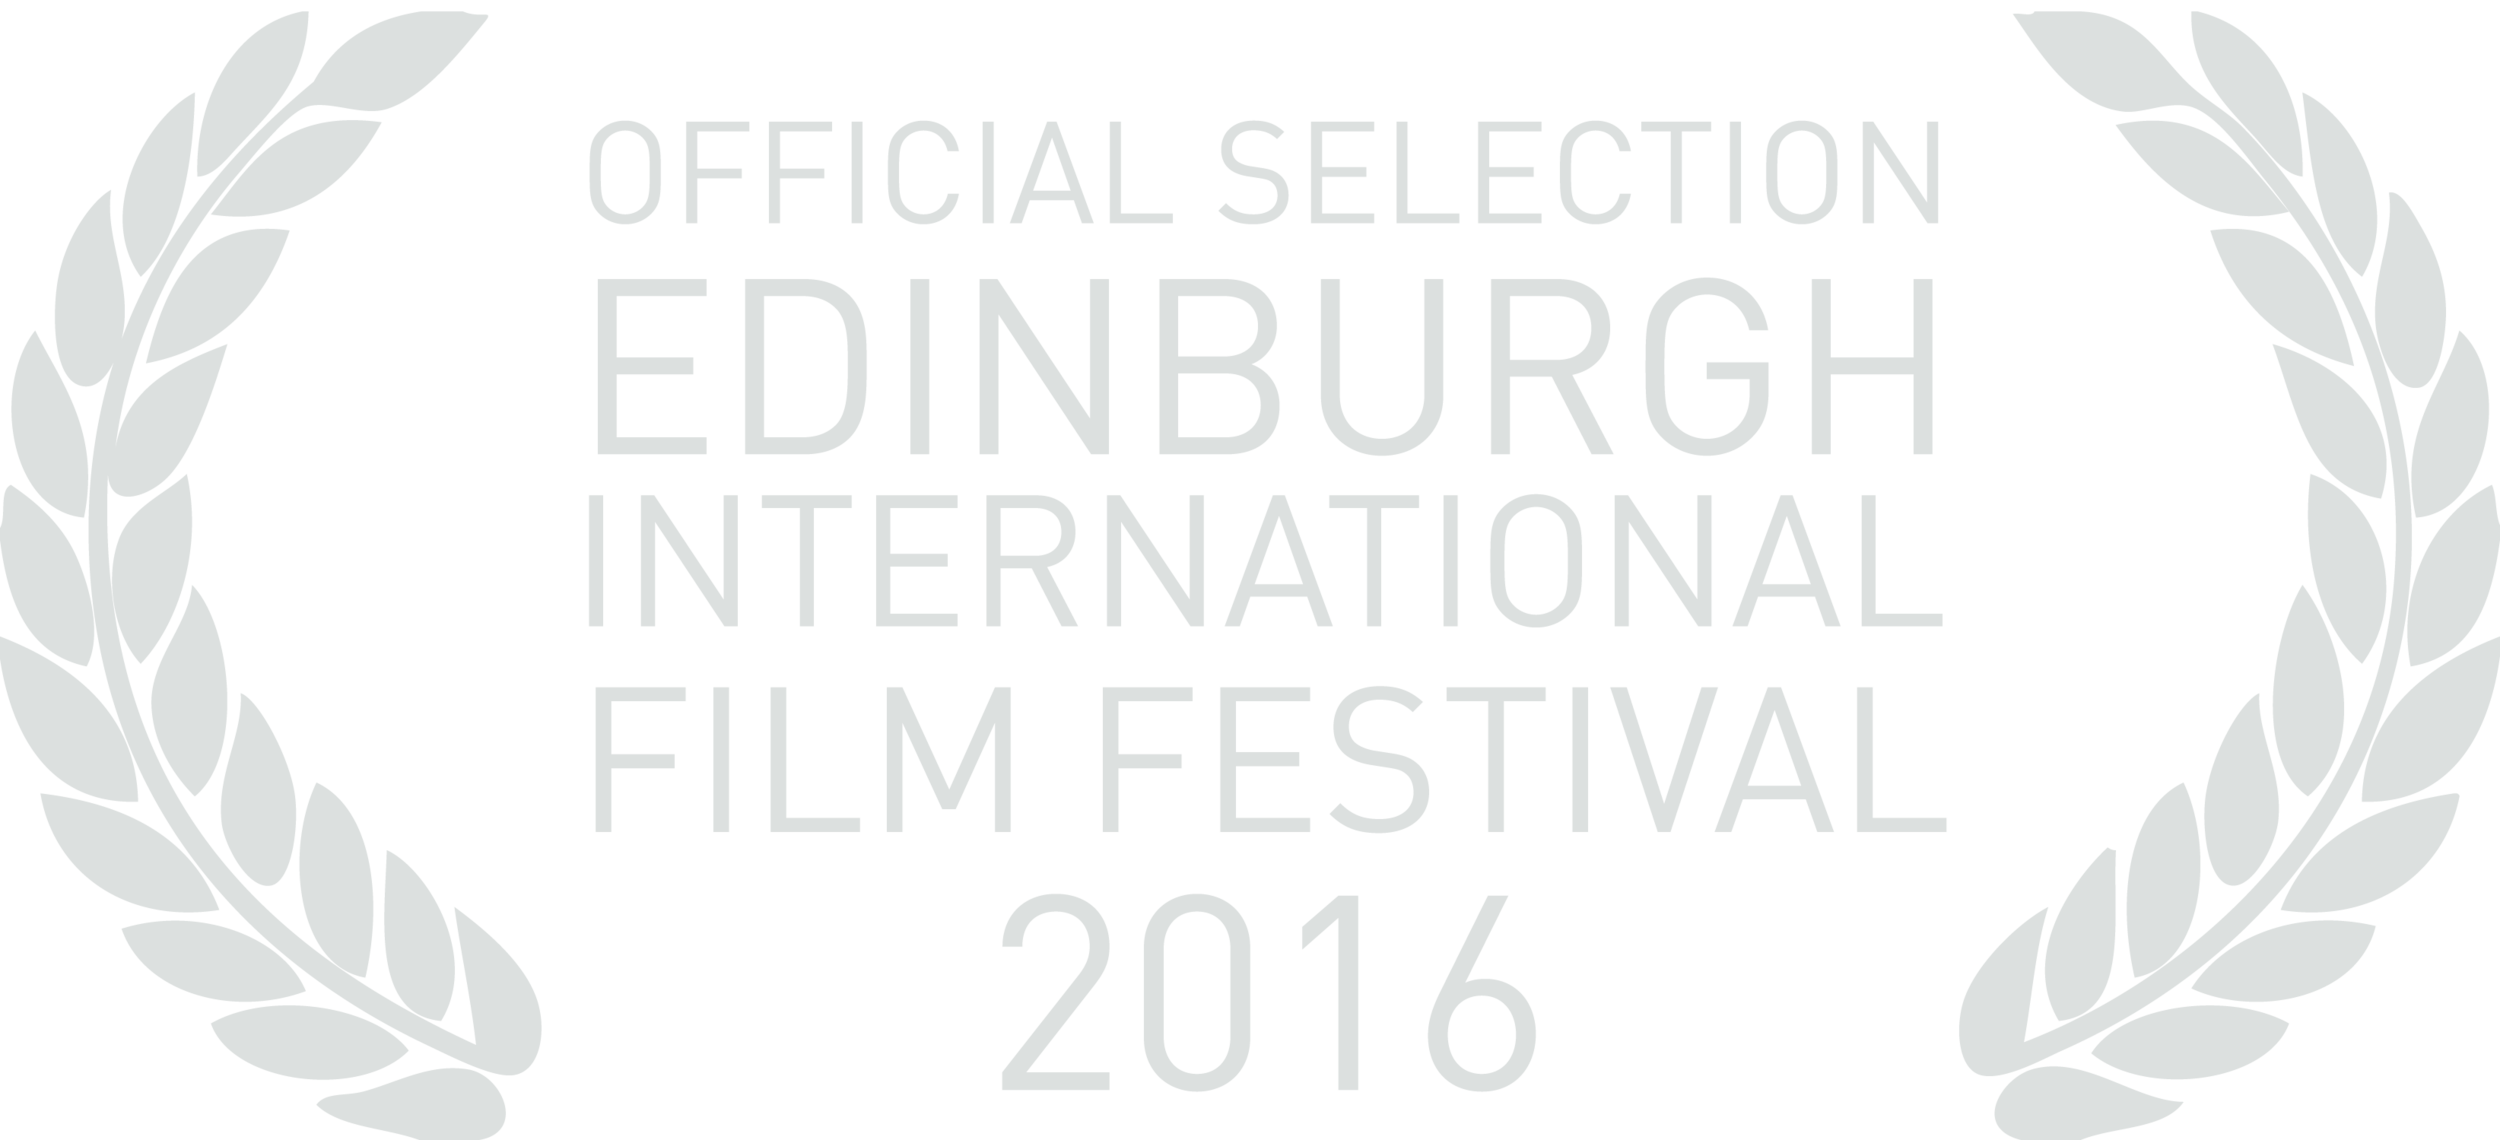 EIFF-laurel-OFFICIALSELECTION-2016-NEG-WHITE.png